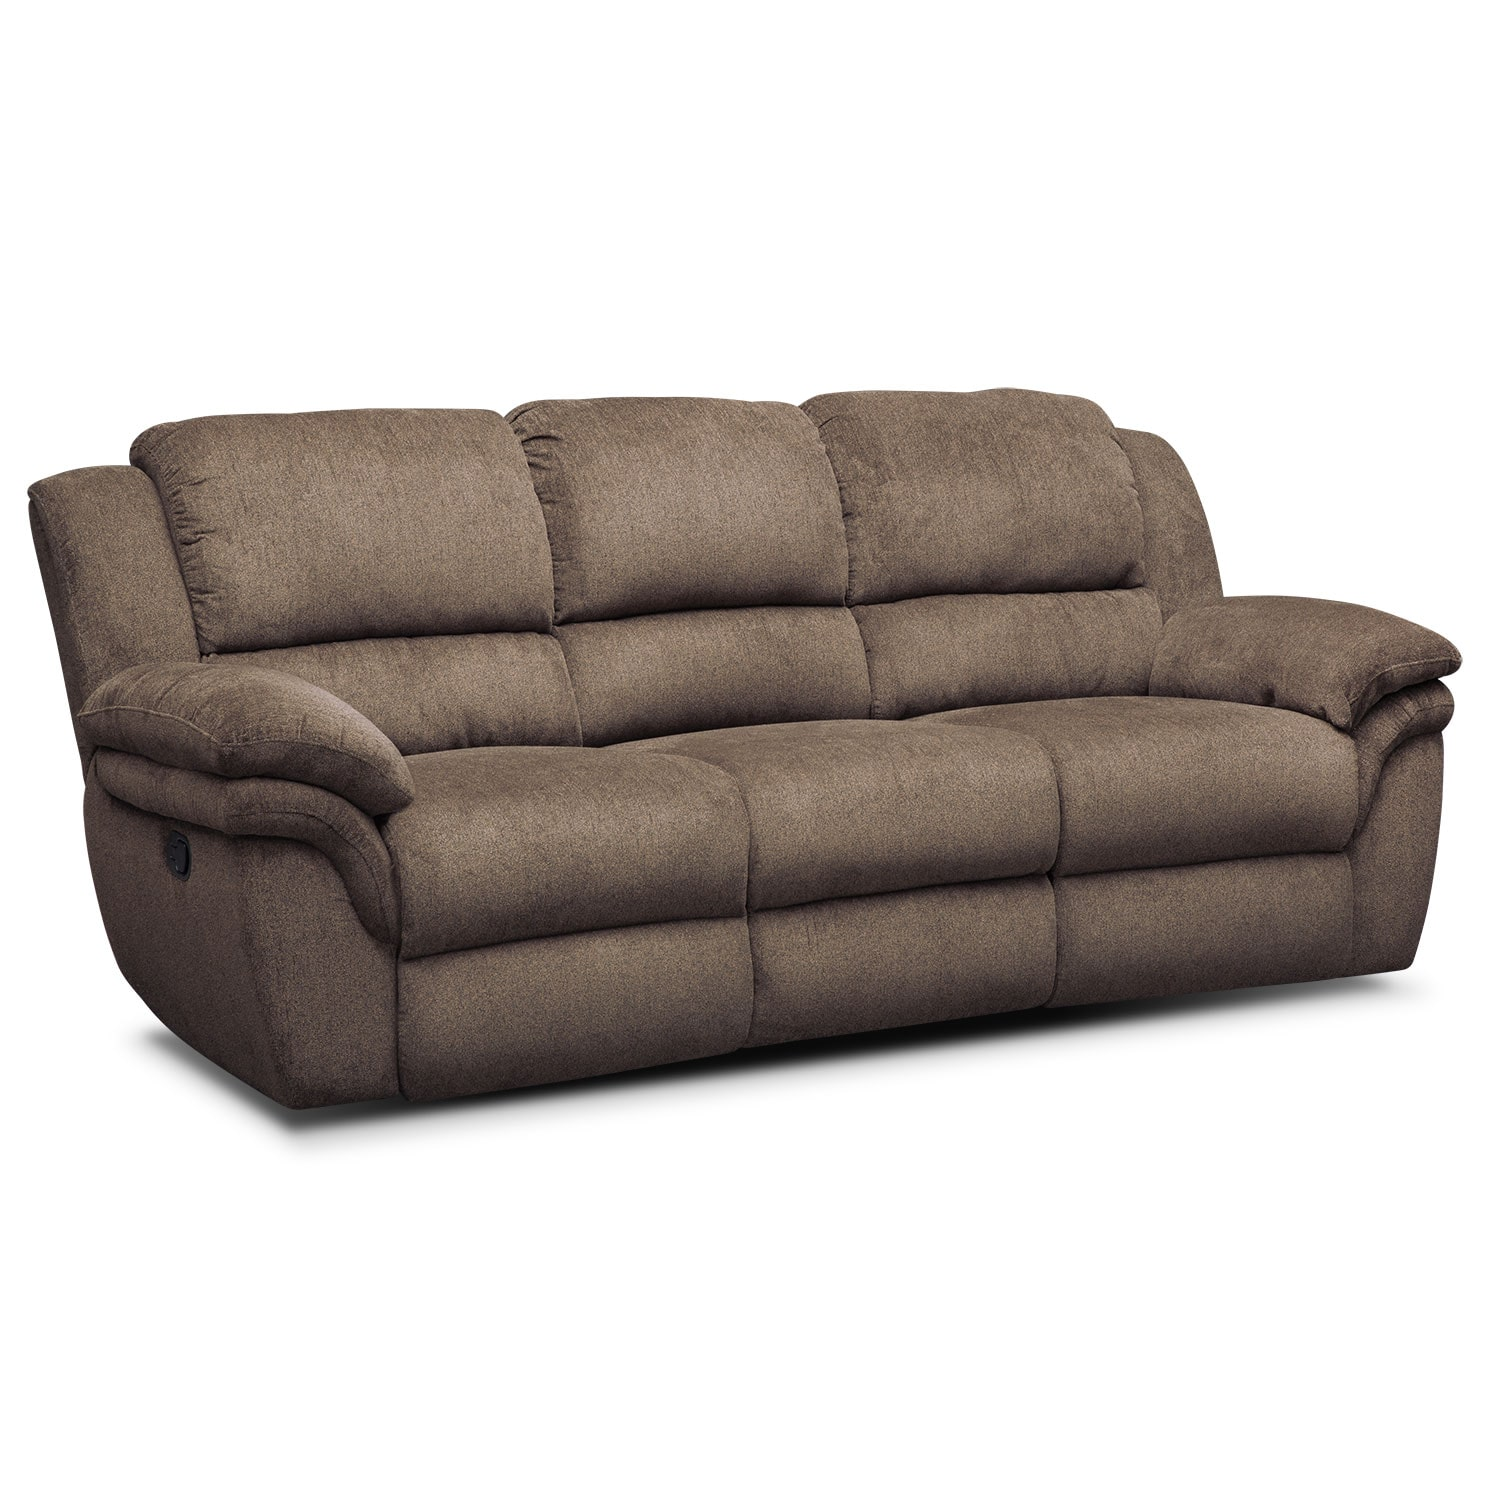 Elegant Aldo Manual Reclining Sofa   Mocha